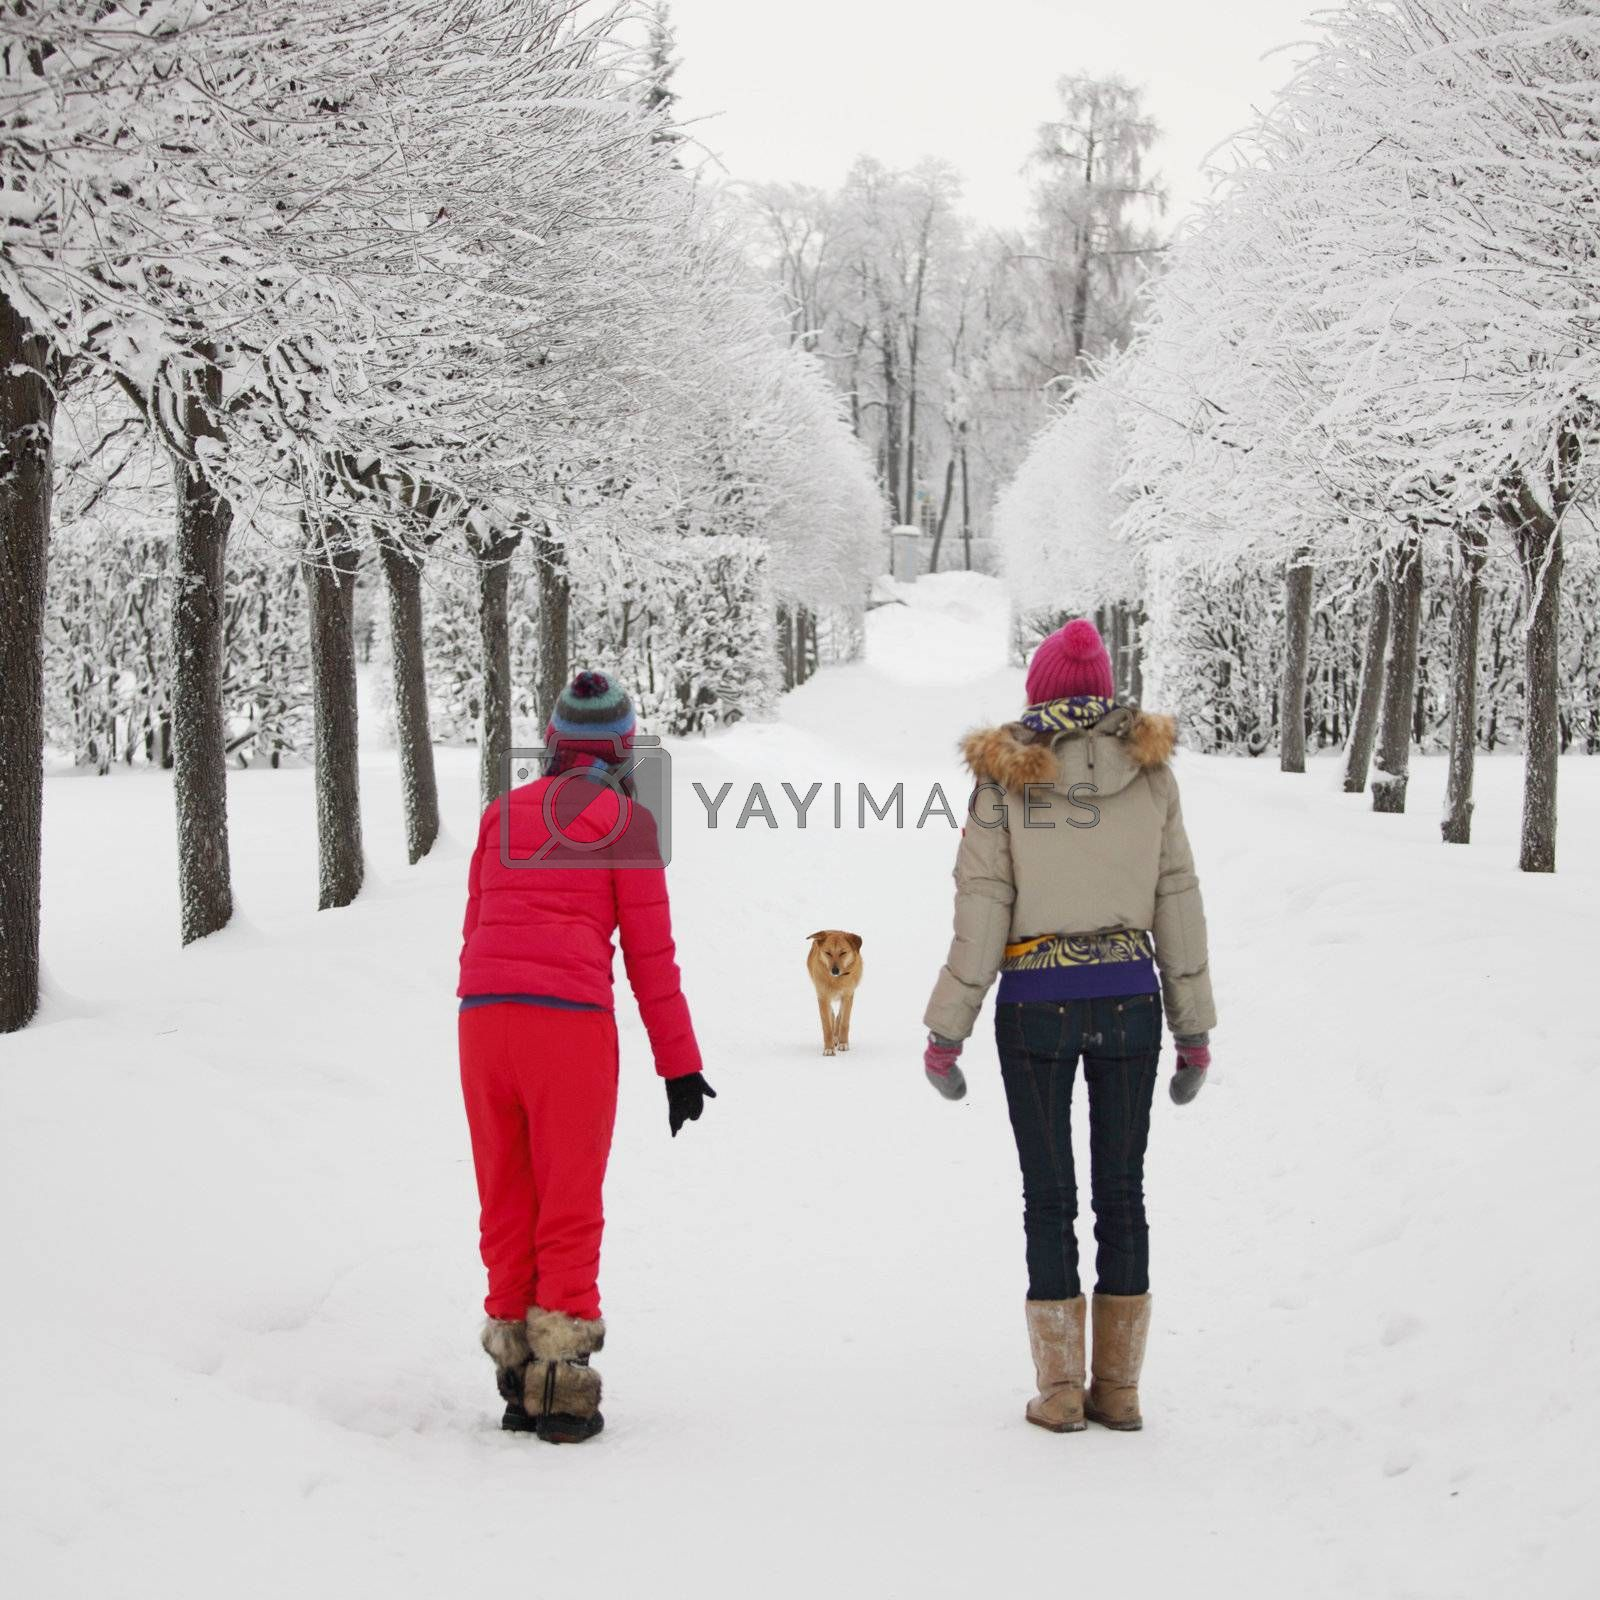 two women walk by winter alley snow trees on background